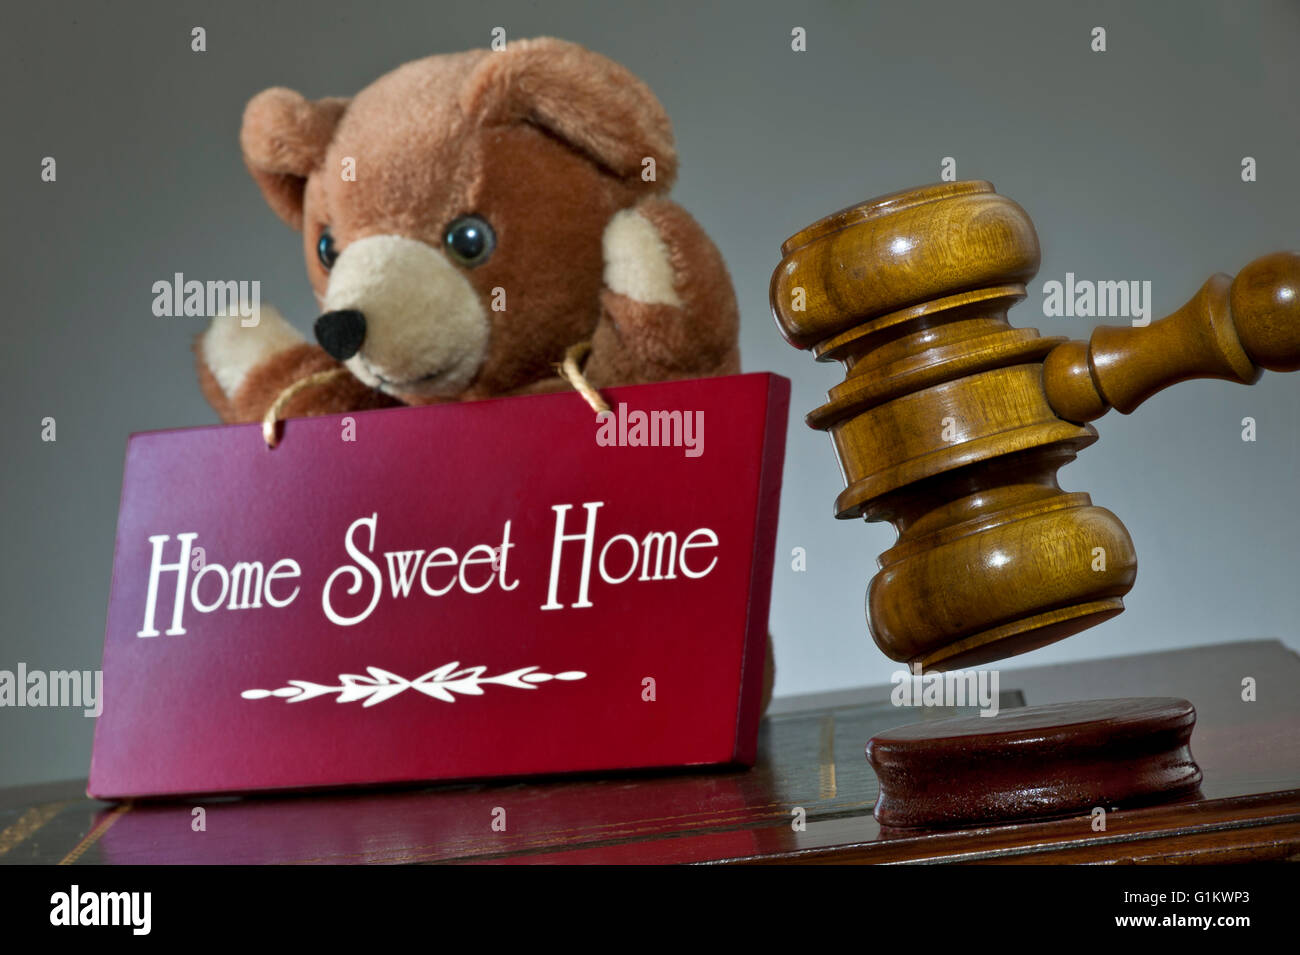 HOME SALE CONCEPT House sale by auction concept, auctioneers hammer & 'Home Sweet Home' sign  with child's - Stock Image